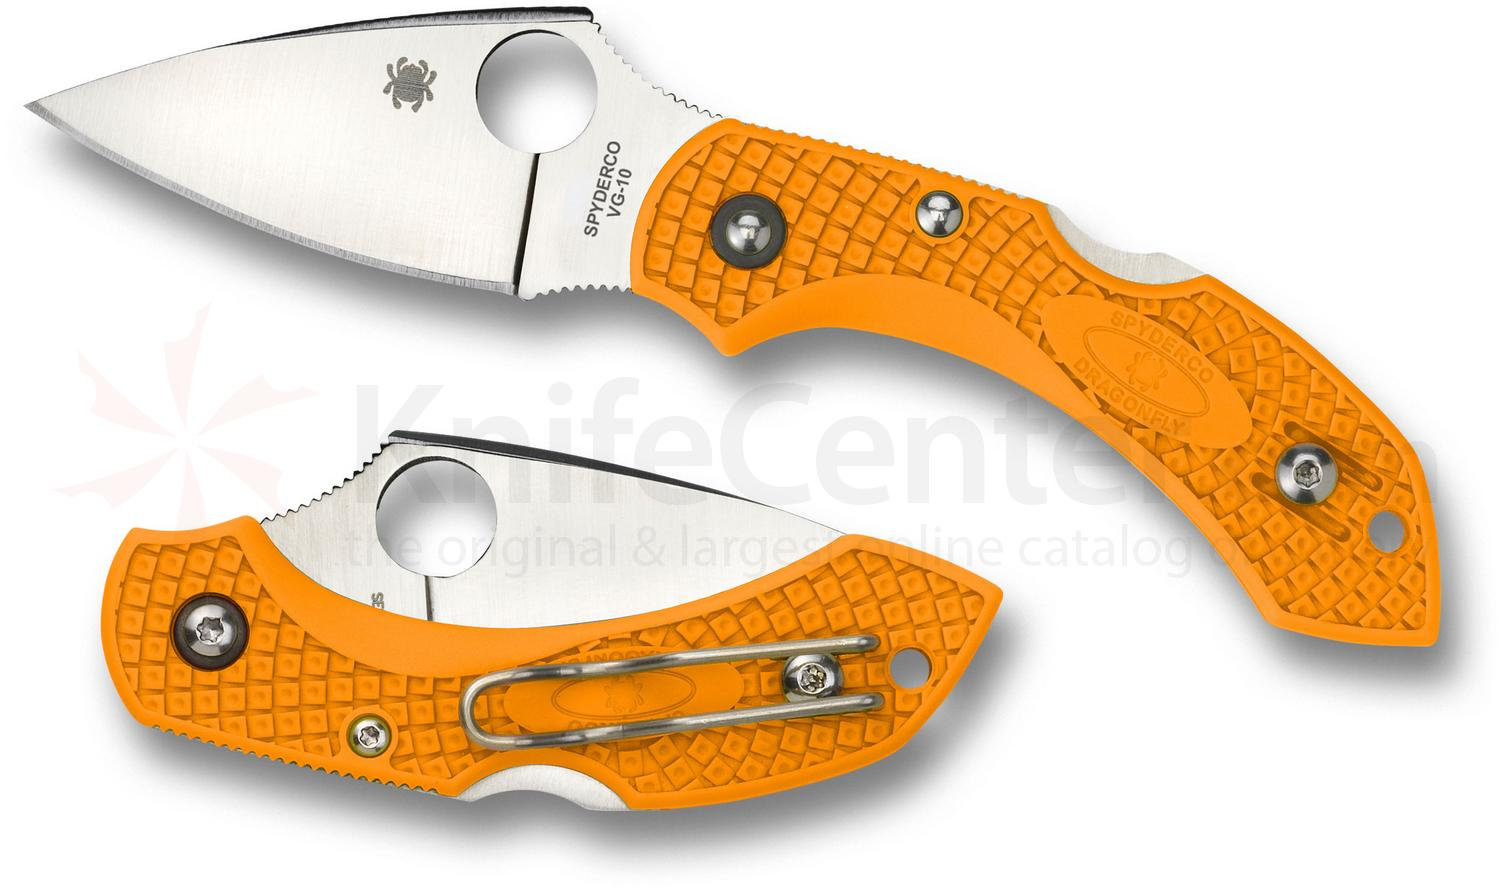 Spyderco C28POR2 Dragonfly 2 Folding Knife 2-5/16 inch VG10 Plain Blade, Orange FRN Handles